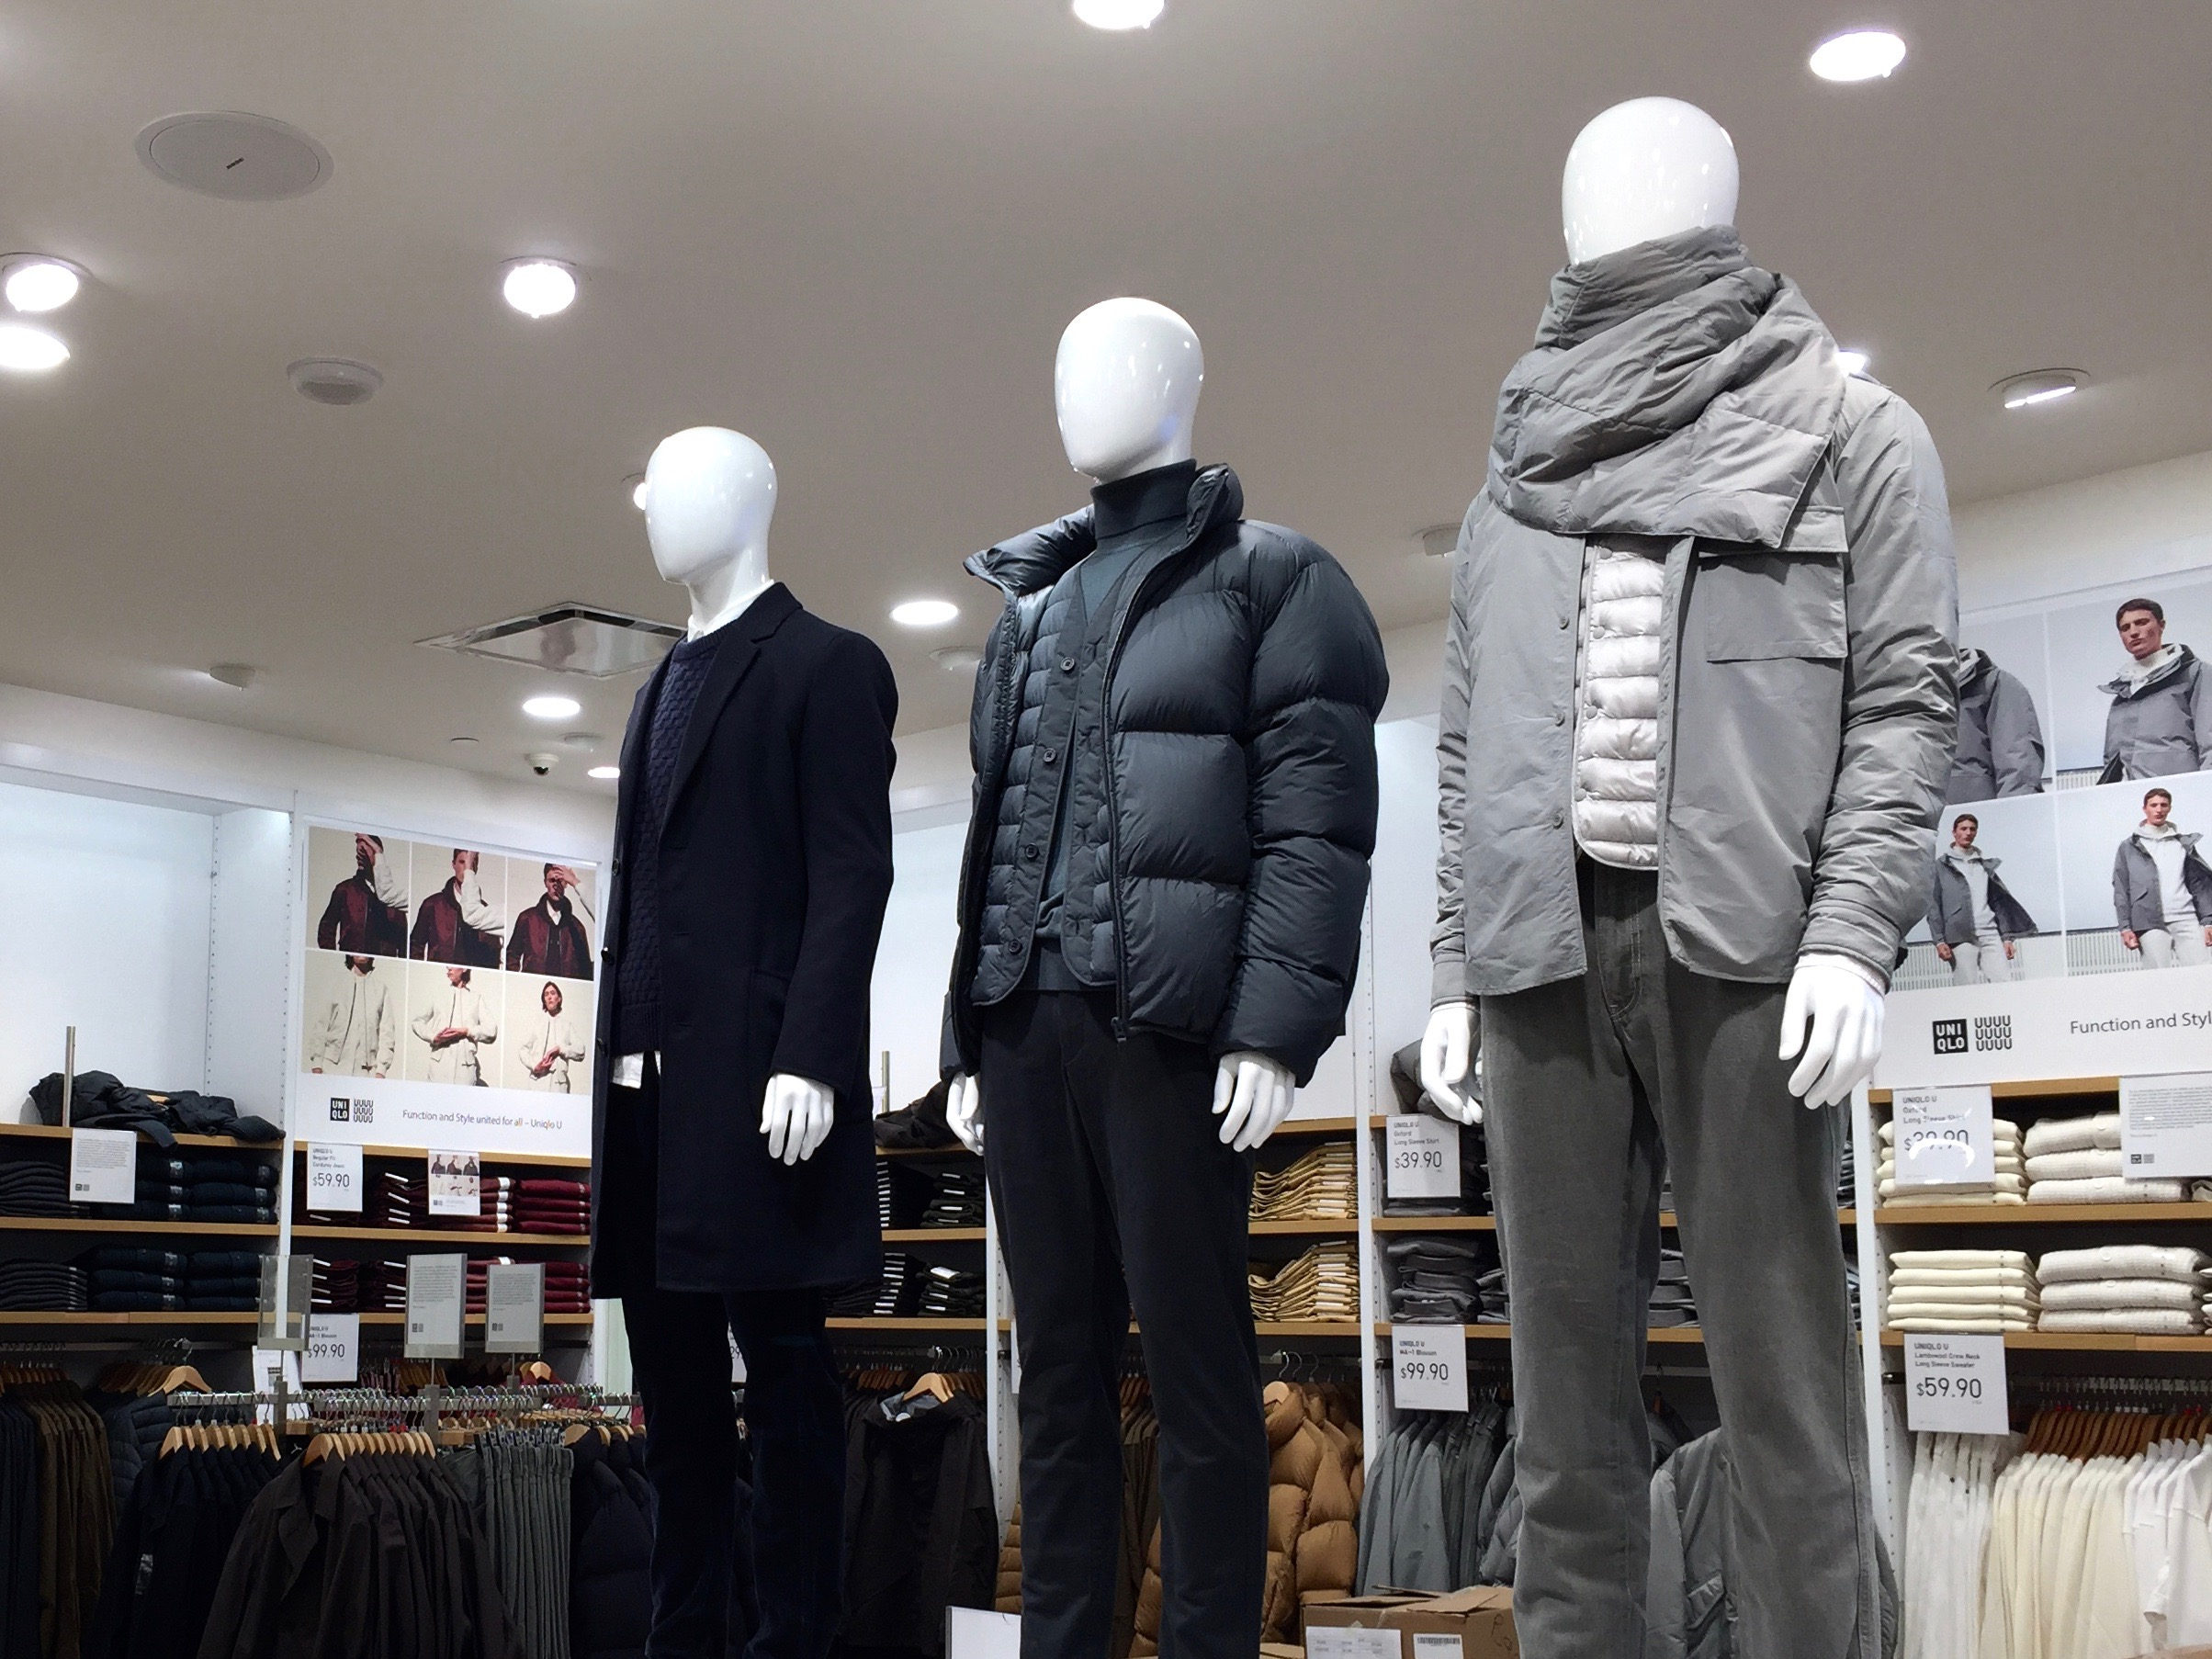 Toronto's Uniqlo location will be carrying 'Uniqlo U', a sophisticated line of mens and women's clothing spearheaded by Uniqlo's artistic director Christophe Lemaire. Photo: Devon Johnson